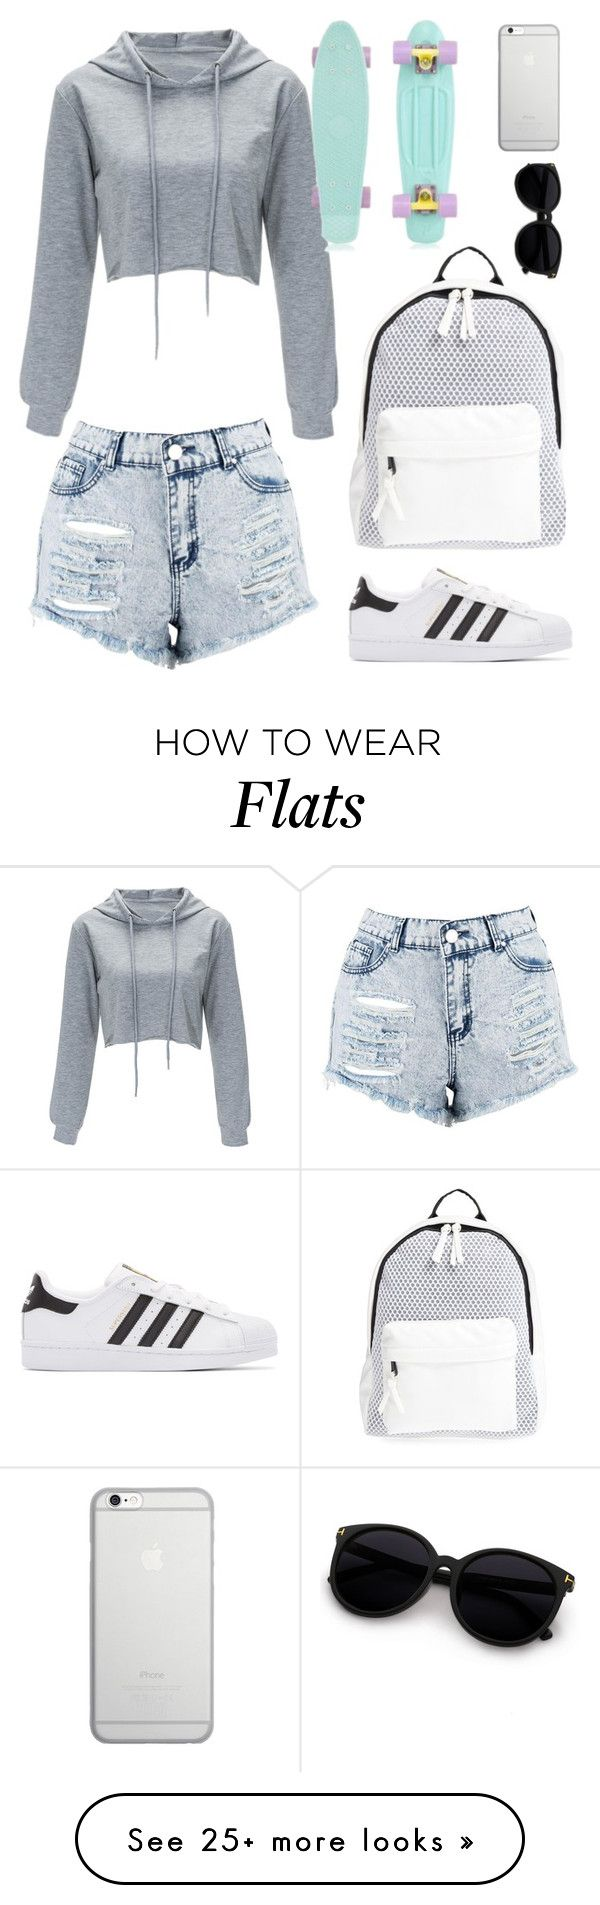 """Untitled #134"" by mimikhoran on Polyvore featuring Boohoo, adidas Originals, Poverty Flats and Native Union"